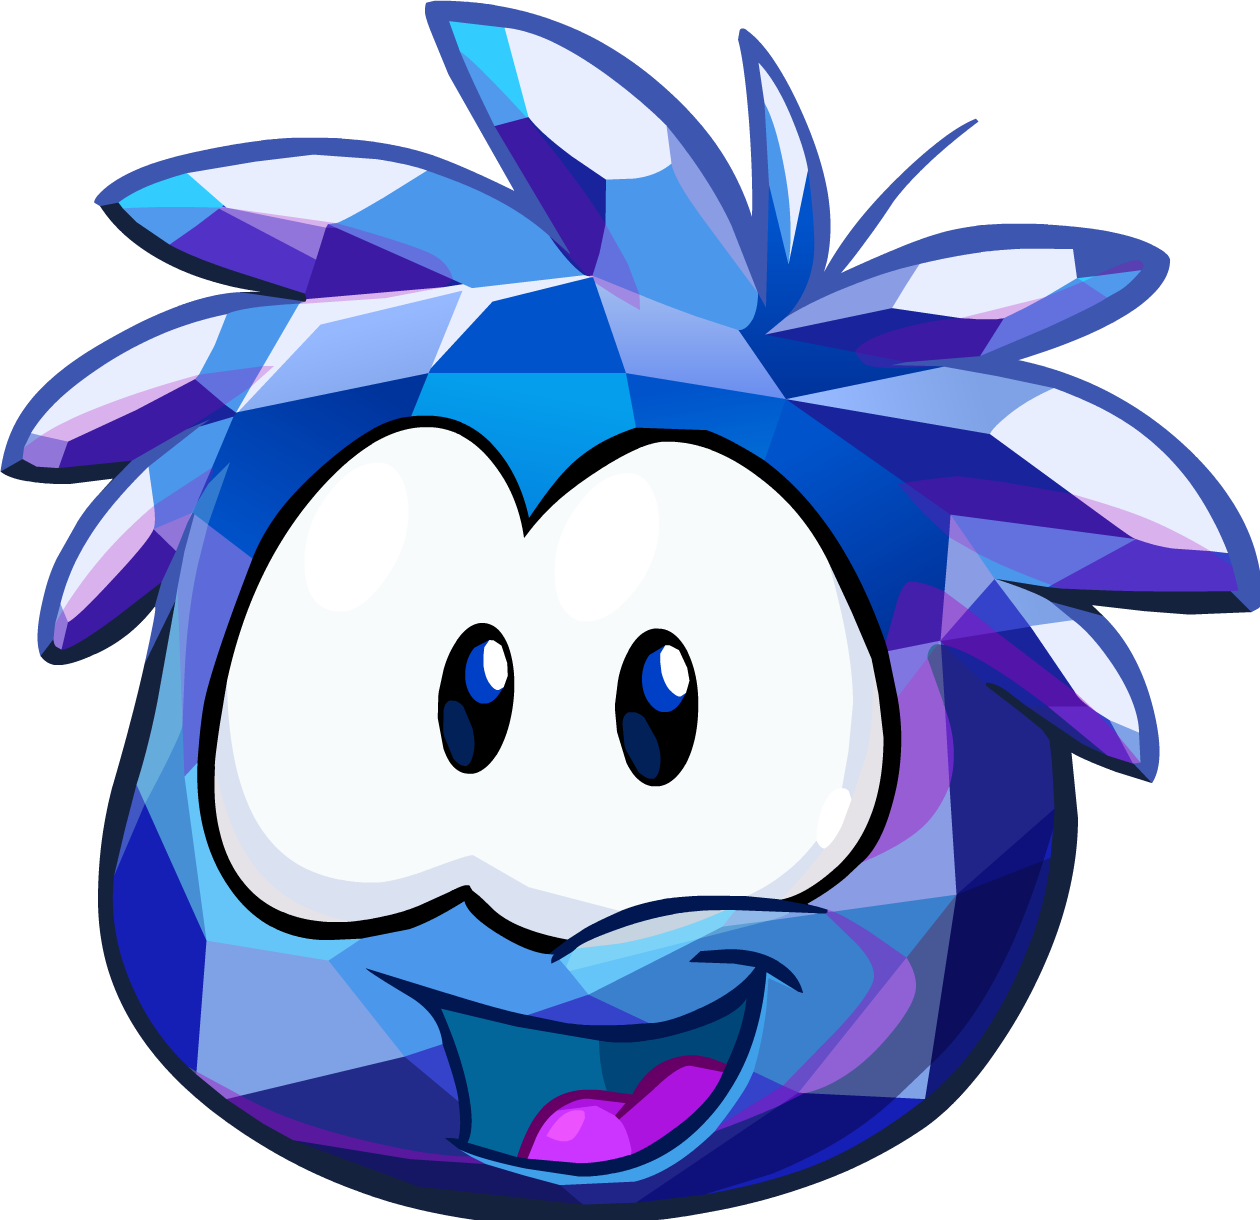 Images of All Puffles Club Penguin Club penguin all. - Pinterest Pictures of all the puffles